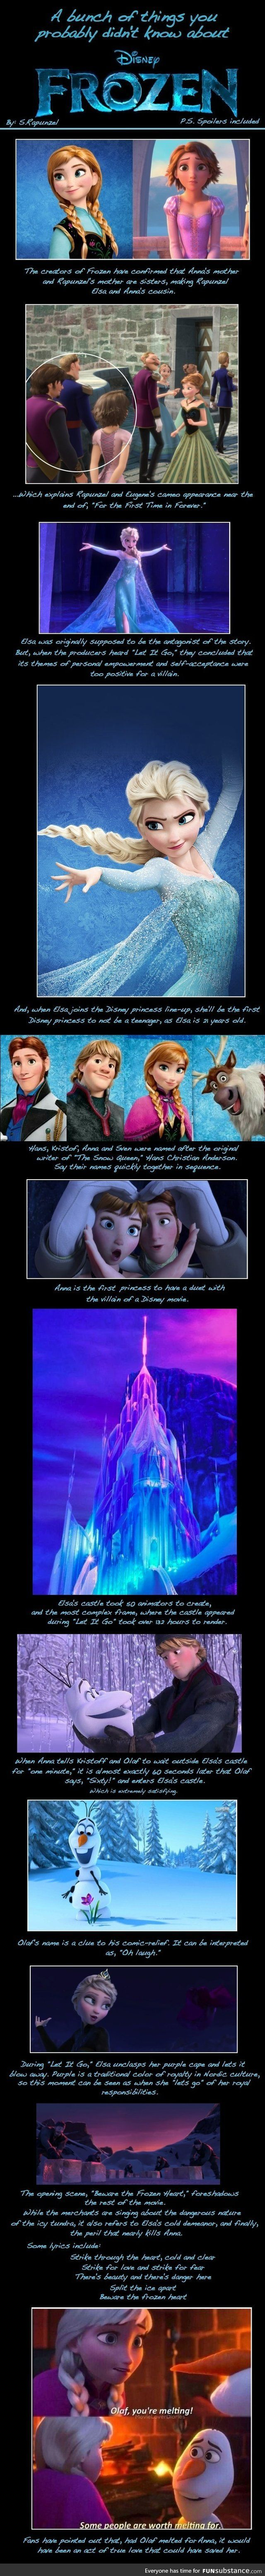 Frozen Facts. But I'd like to think Anna was supposed to make an act of true love. I'm also very glad Olaf didn't melt for Anna, because he is one of the best things about this movie